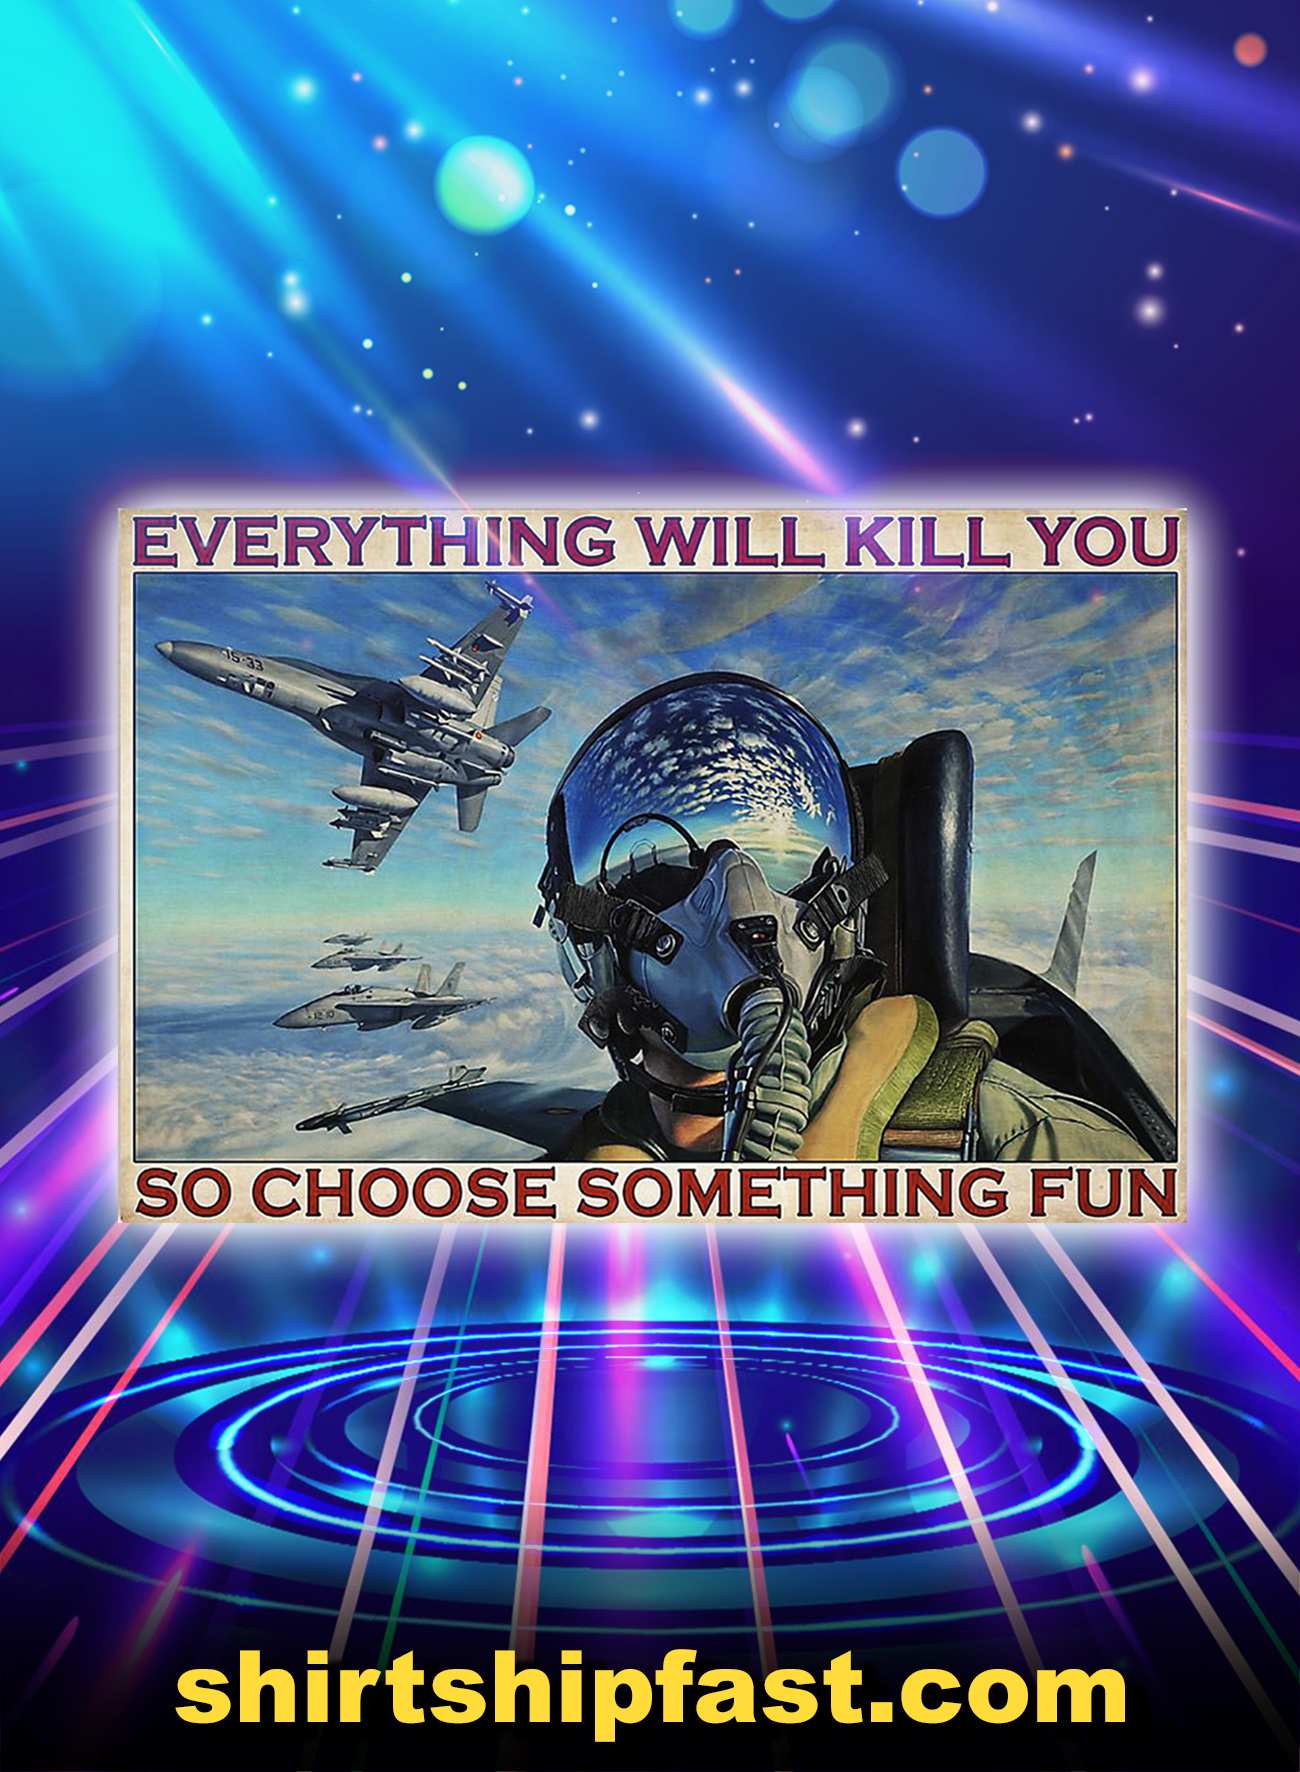 Fighter aircraft everything will kill you poster - A1